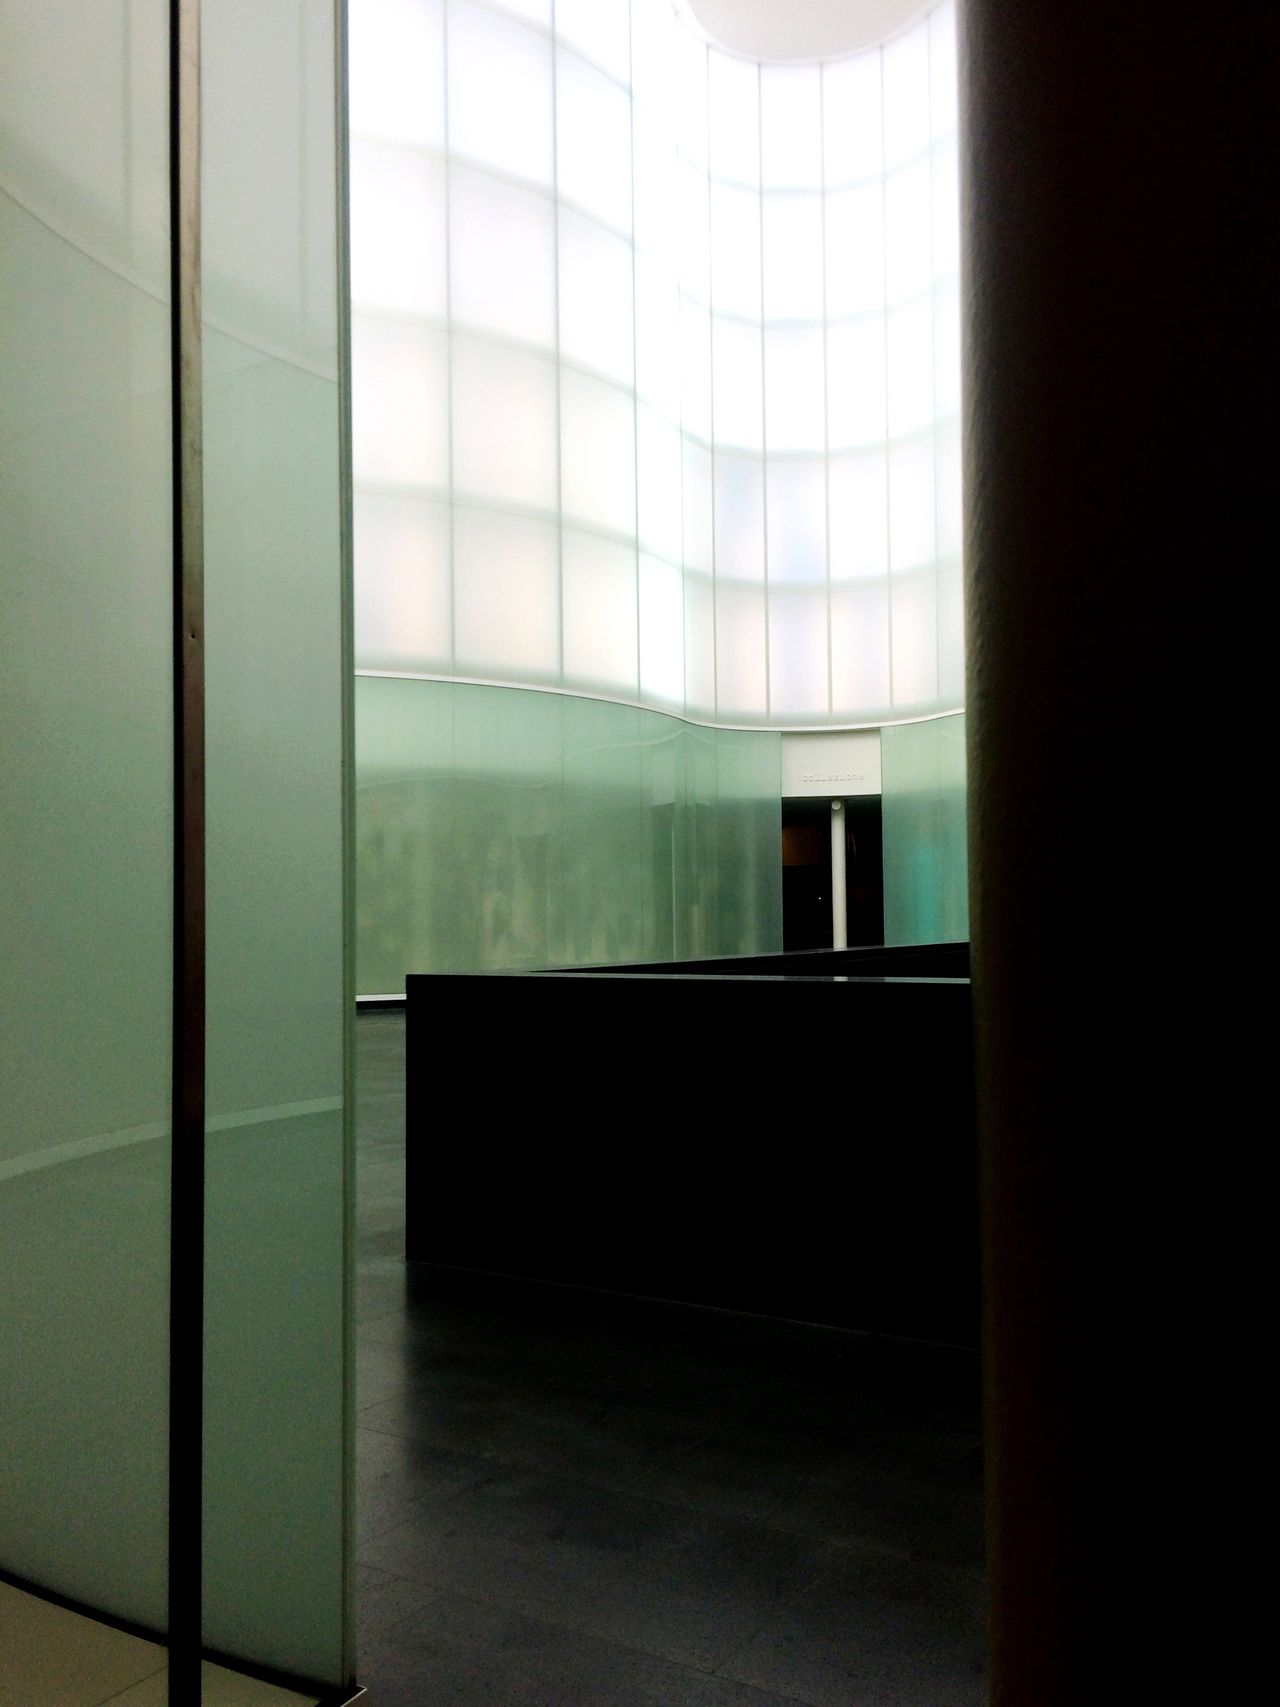 Window Indoors  No People Home Interior Built Structure Day Modern Architecture Close-up Sliding Door Composition Mudec